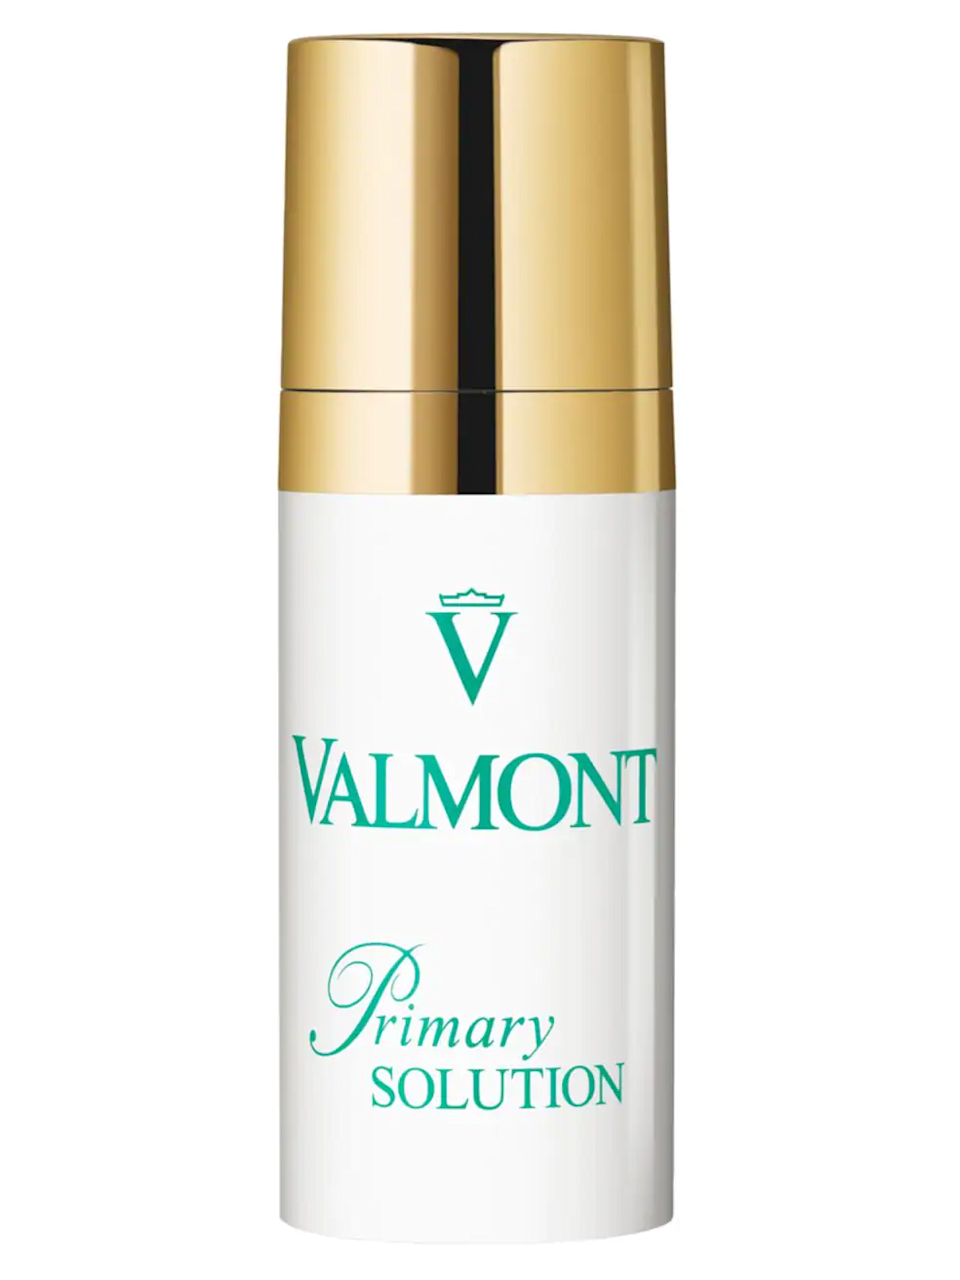 Valmont Primary Solution. Image via Saks Fifth Avenue.